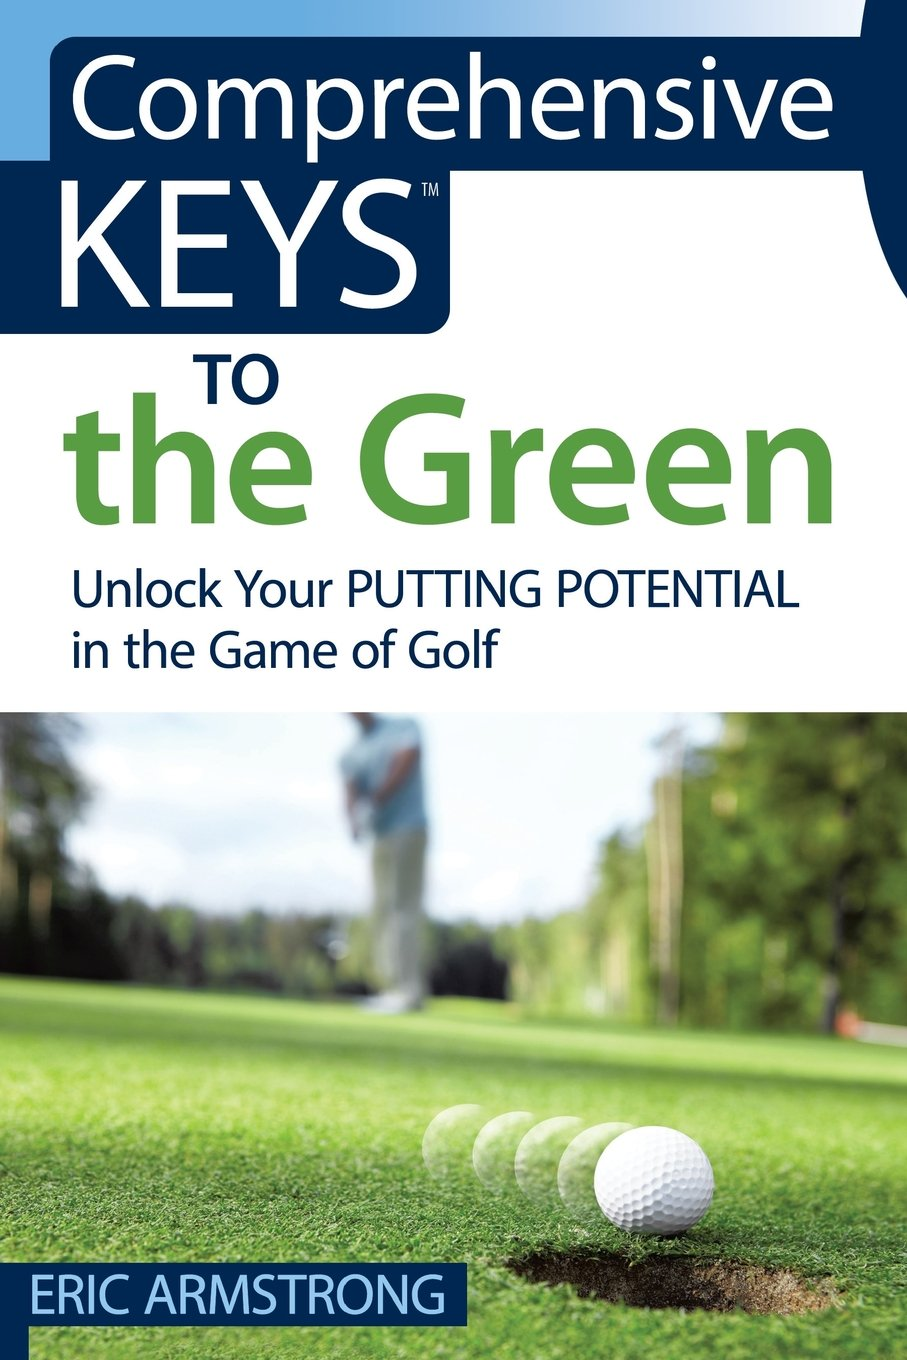 Comprehensive Keys to the Green: Unlock Your Putting Potential in the Game  of Golf: Eric Armstrong: 9780997240009: Amazon.com: Books